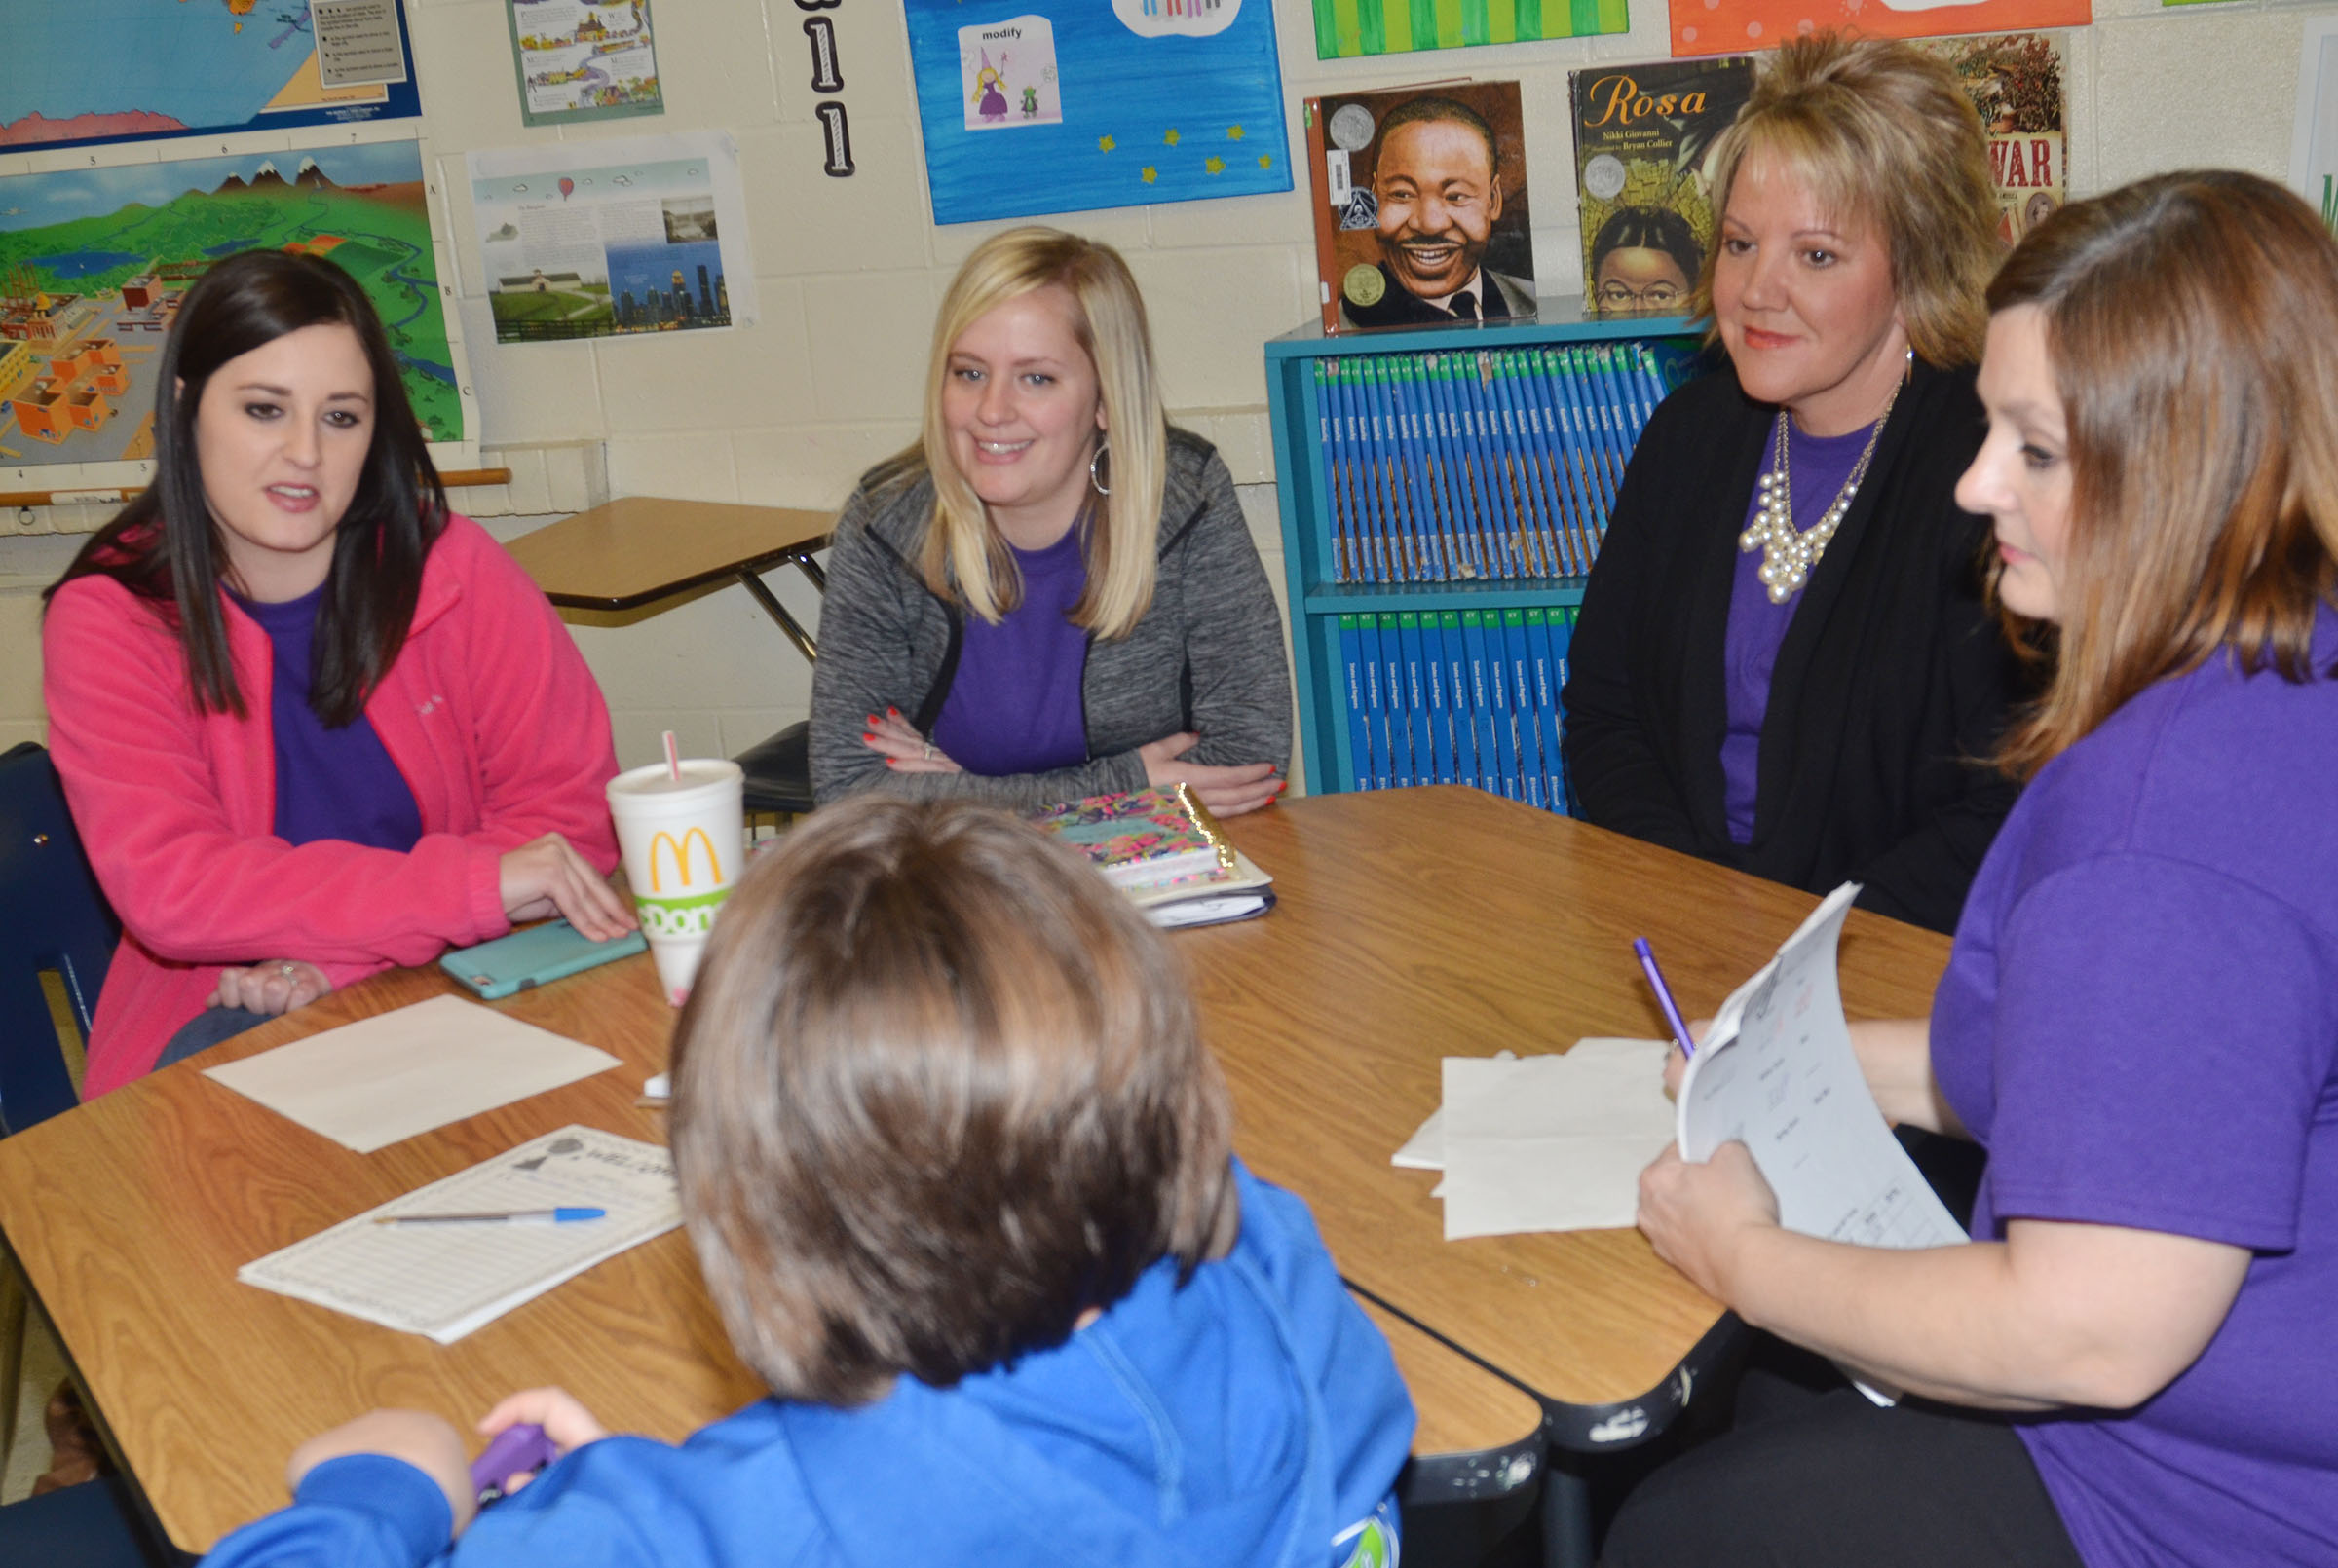 CMS fourth-grade teachers, from left, Samantha Coomer, Maranda Wright, Kaye Agathen and Garnetta Murrell talk to a student about her grades.